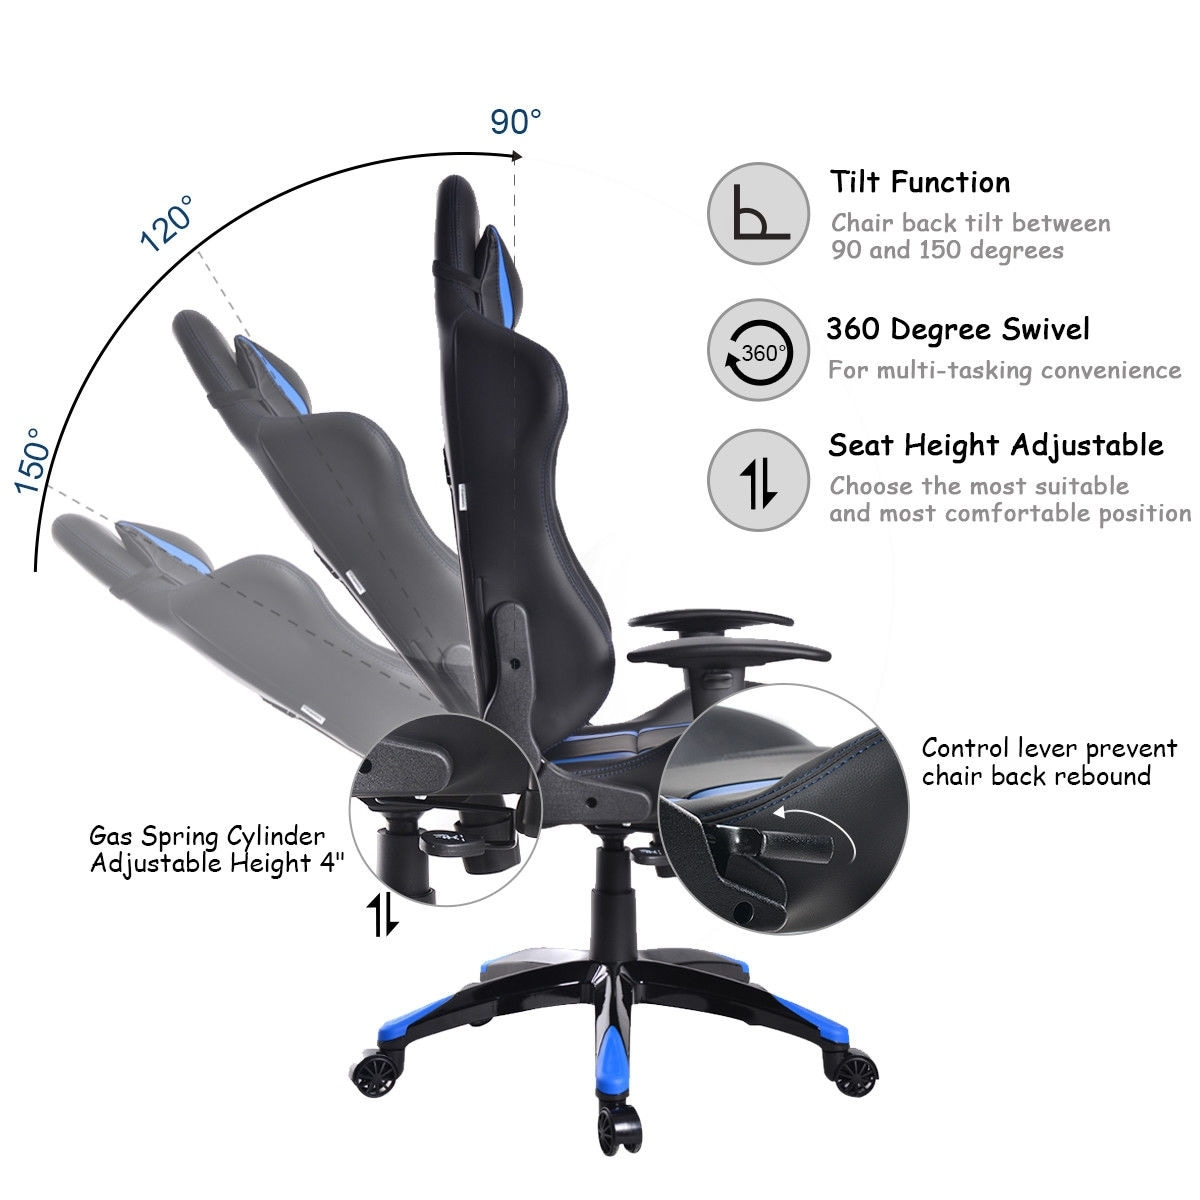 Office Chair Posture Costway Racing High Back Reclining Gaming Chair Ergonomic Computer Desk Office Chair Blue